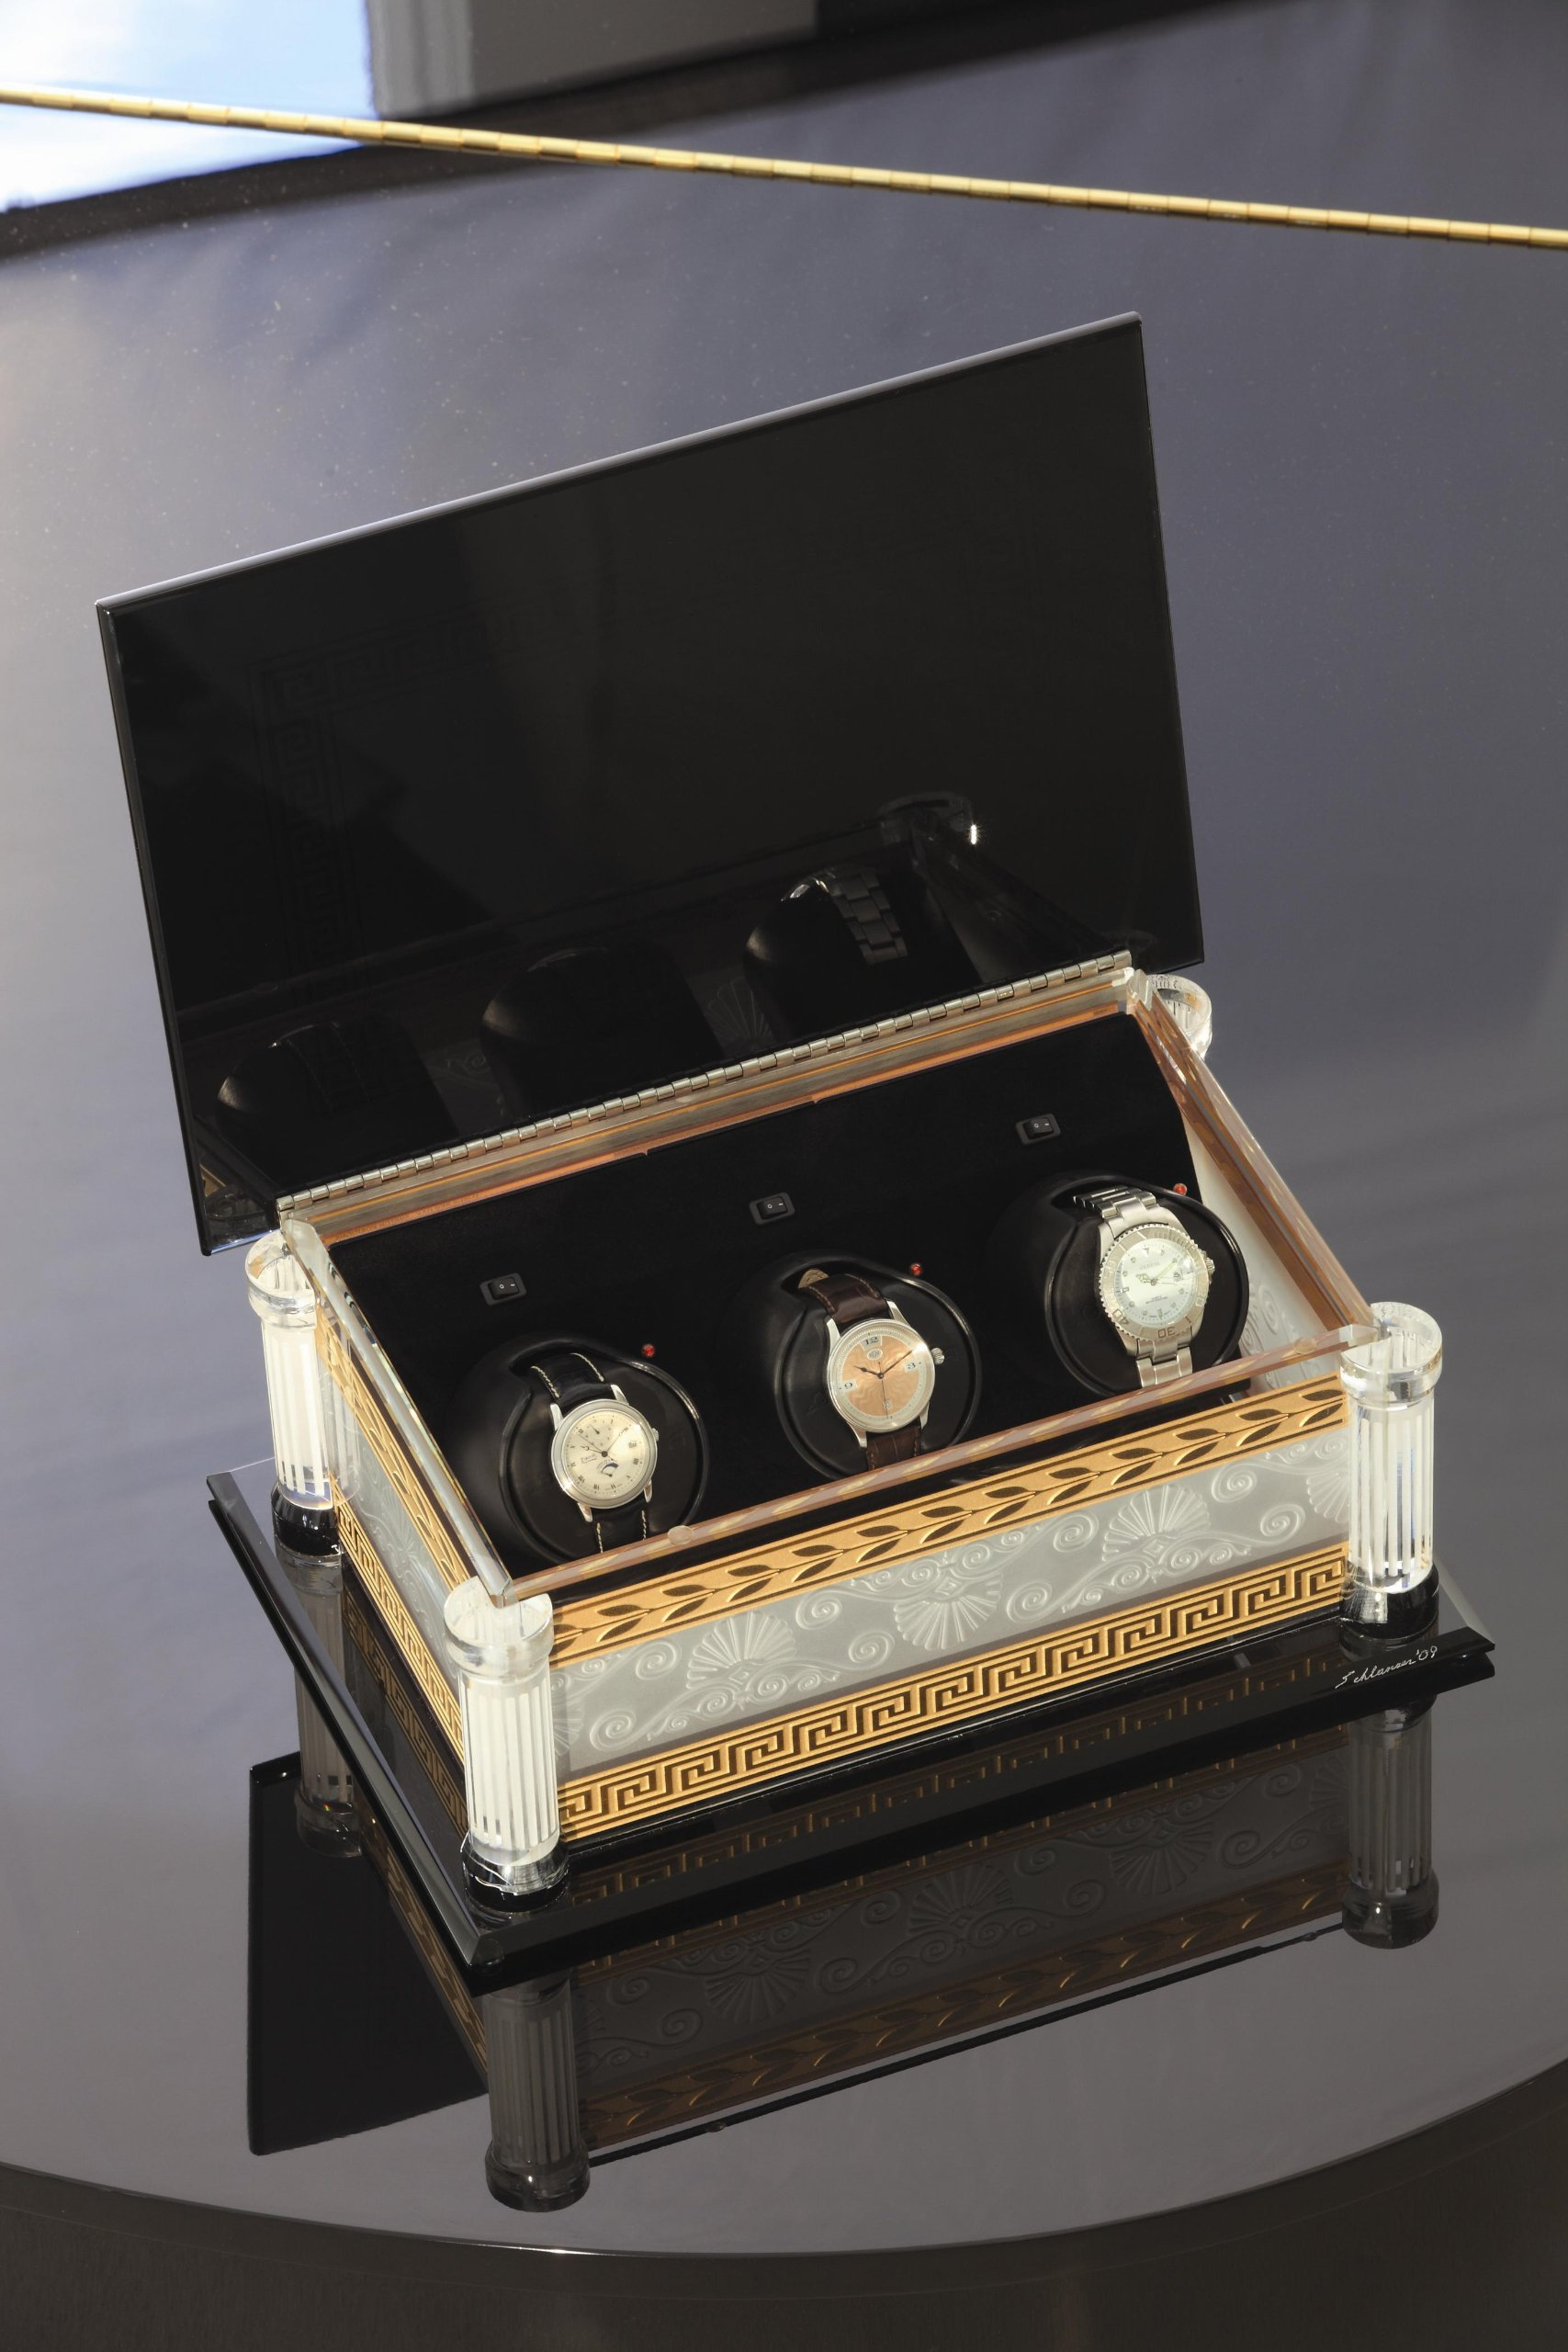 Stephen Schlanser Rotorwind Watch Winder by Orbita Signed and Dated by the Artist by Orbita